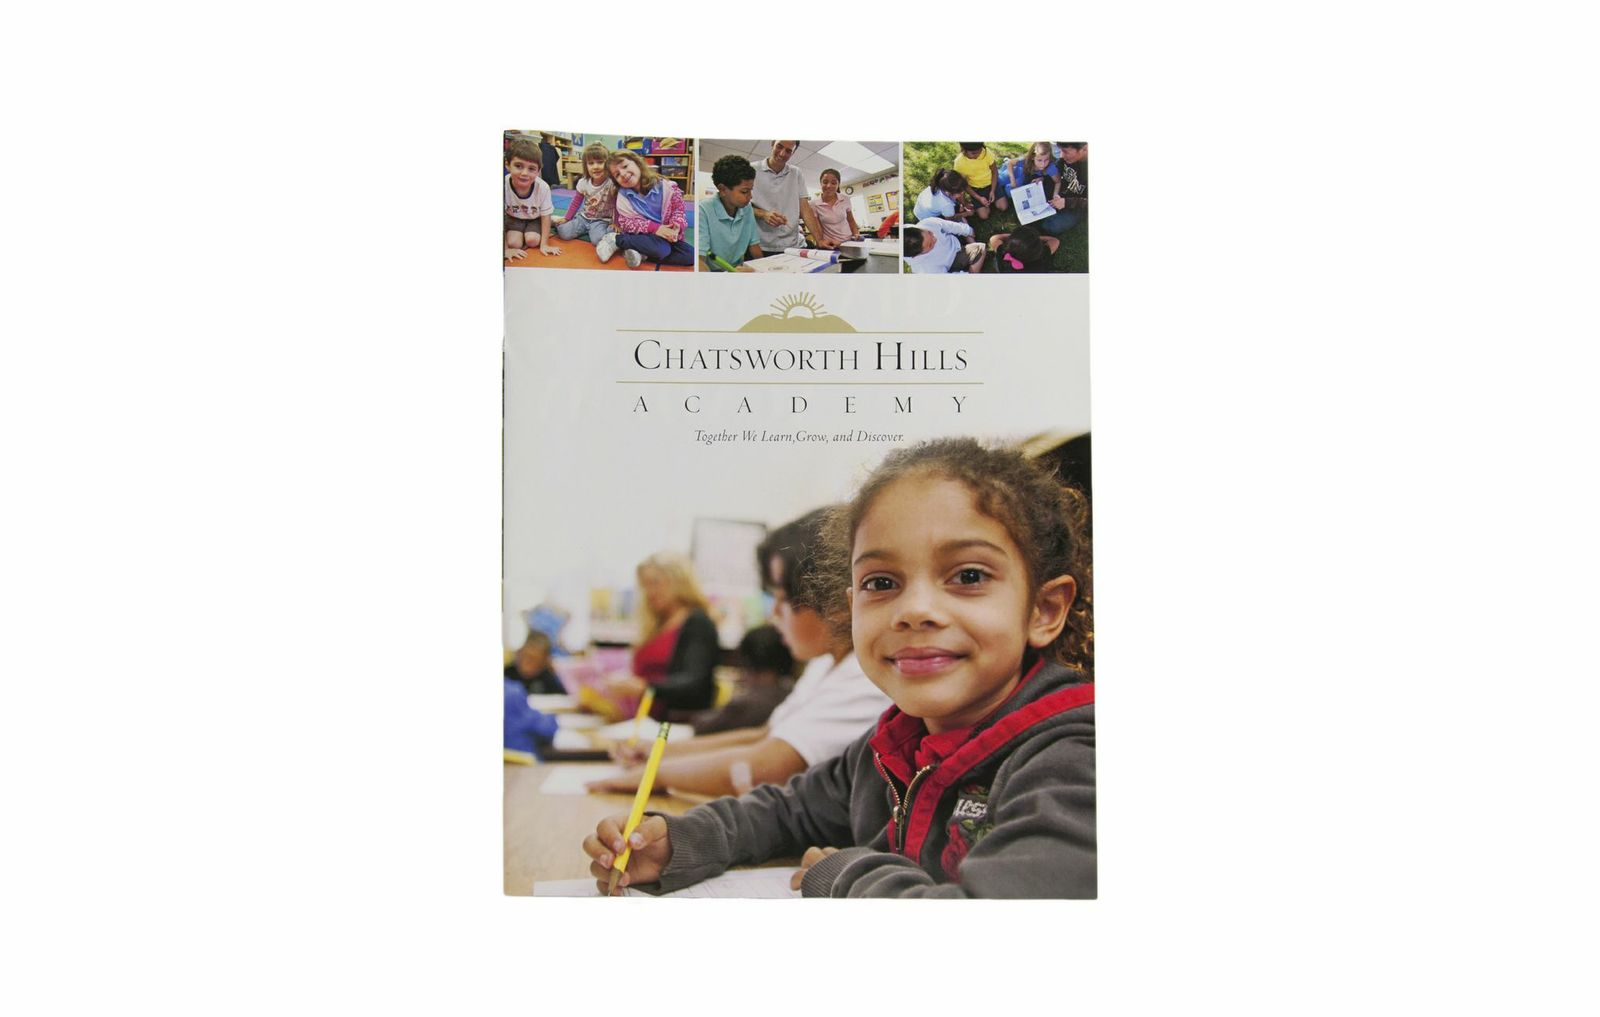 Chatsworth Hills Academy Promotional Materials by InkCentric